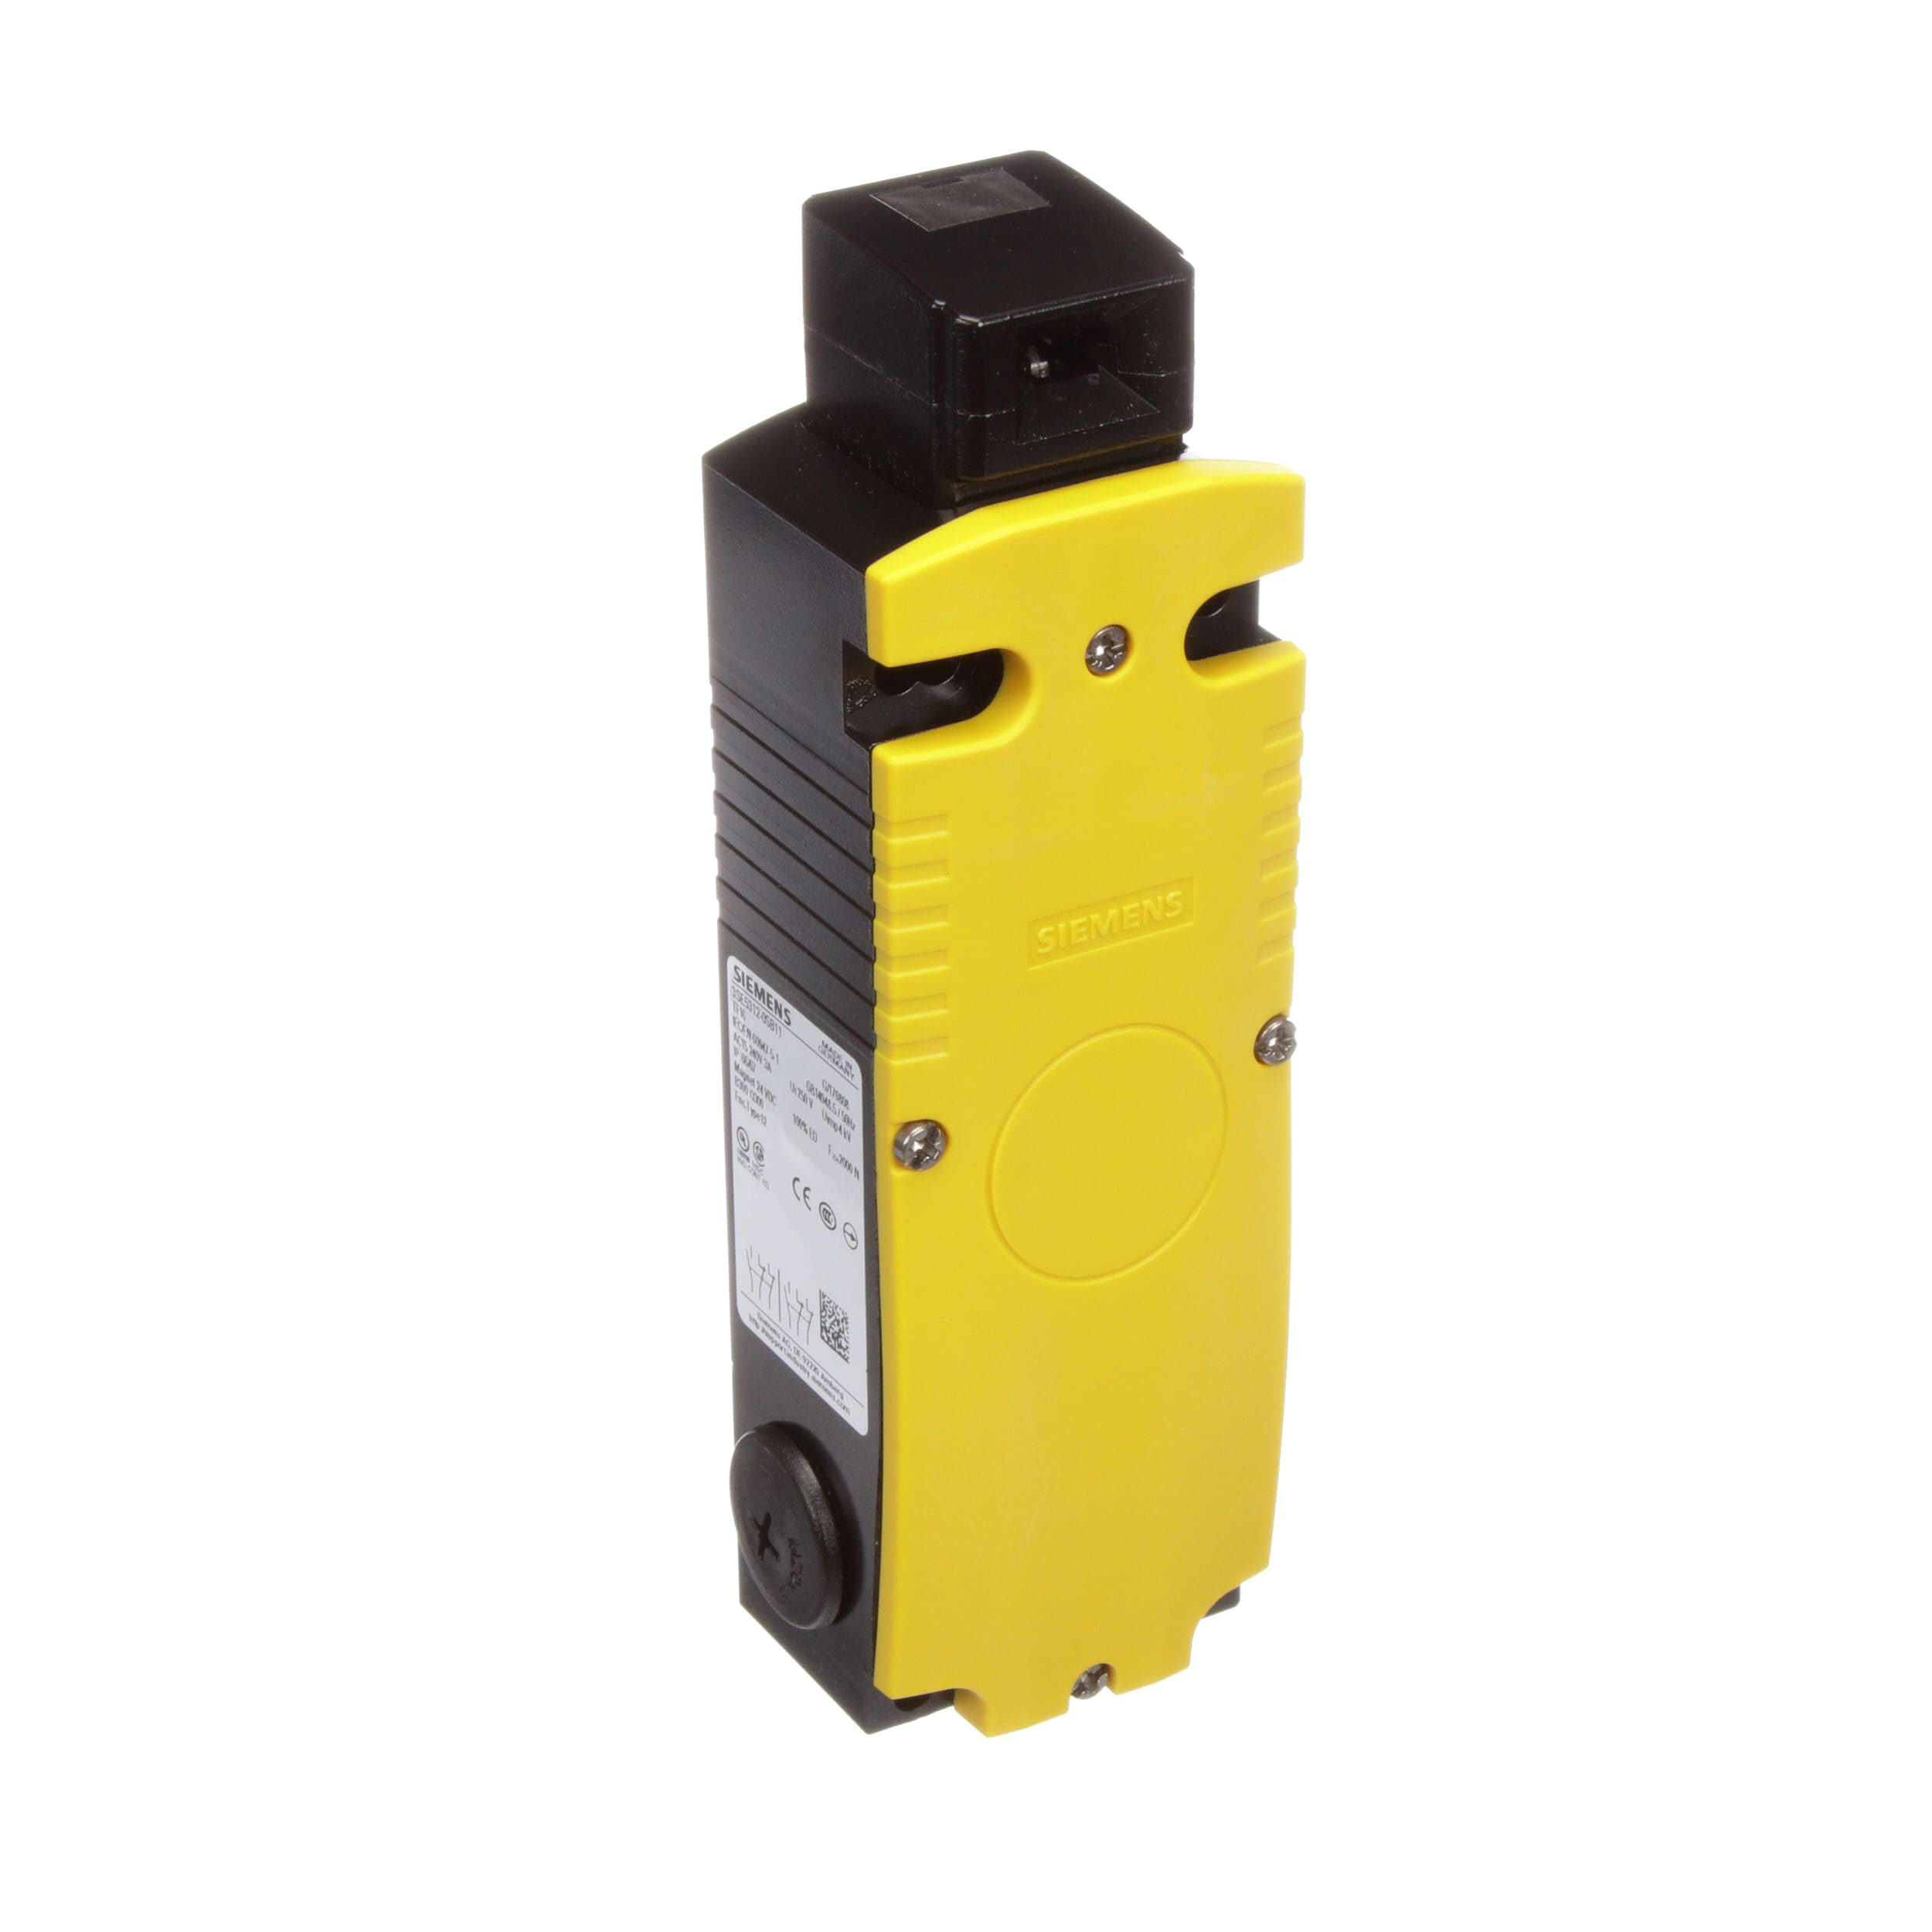 115VAC Rated Operational Voltage Escape Release From the Back 2600N Locking Force Auxiliary Release From the Front Spring Actuated Locks Siemens 3SE5 312-0SG12 Interlock Switch 54mm Metal Enclosure